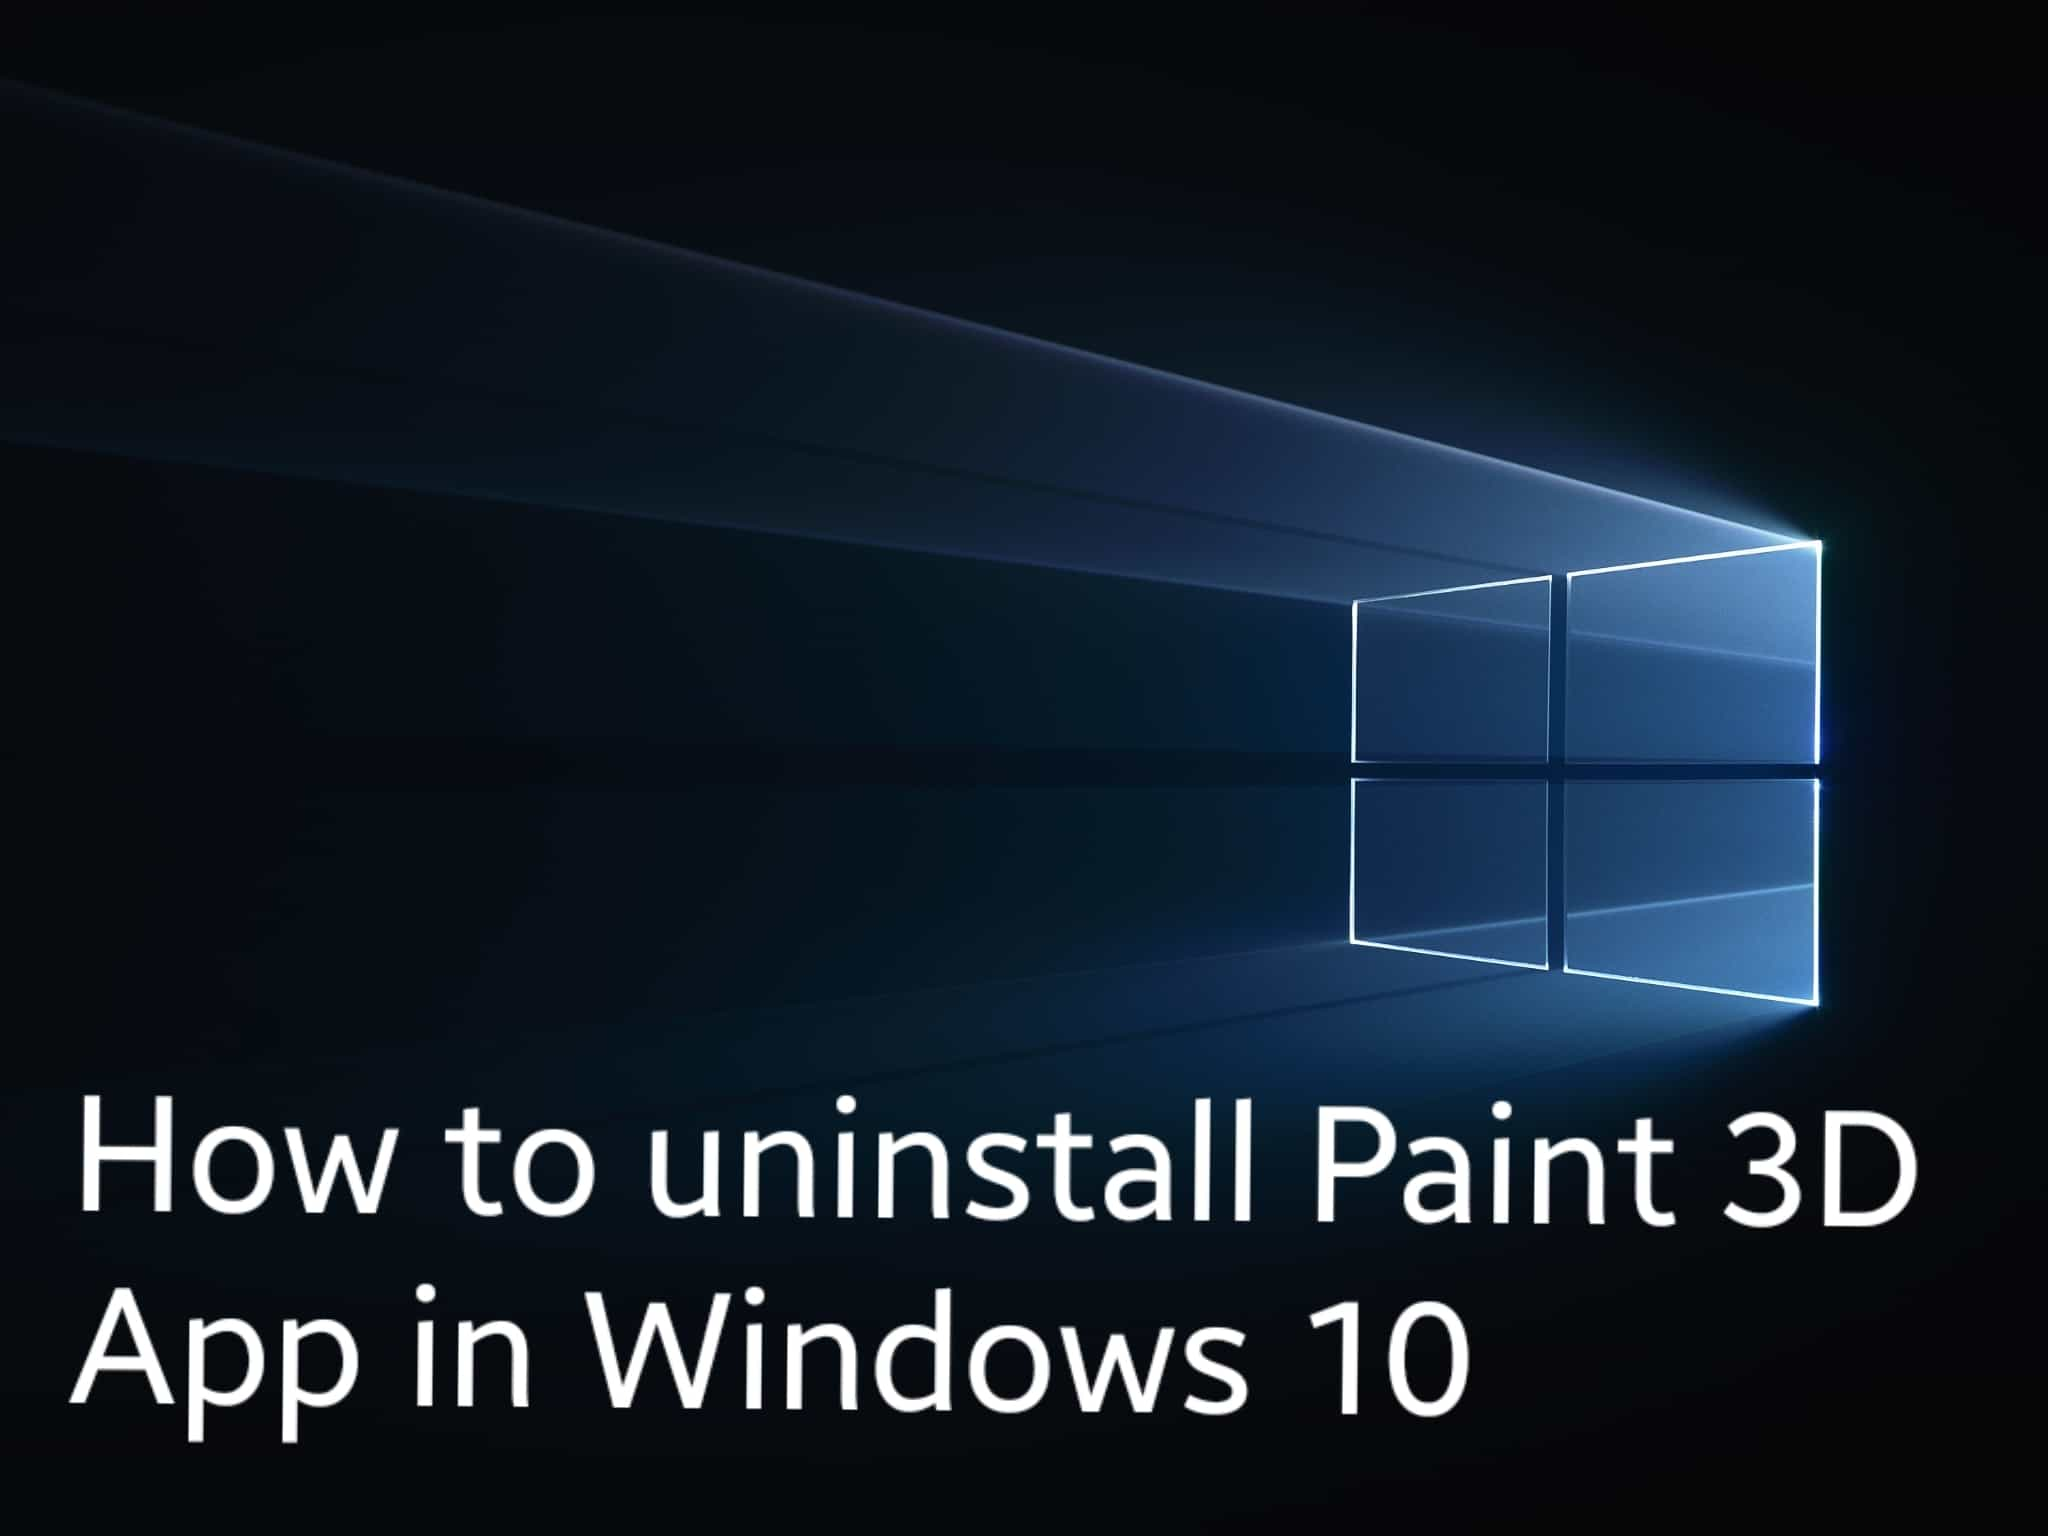 How to uninstall Paint 3D App in Windows 10